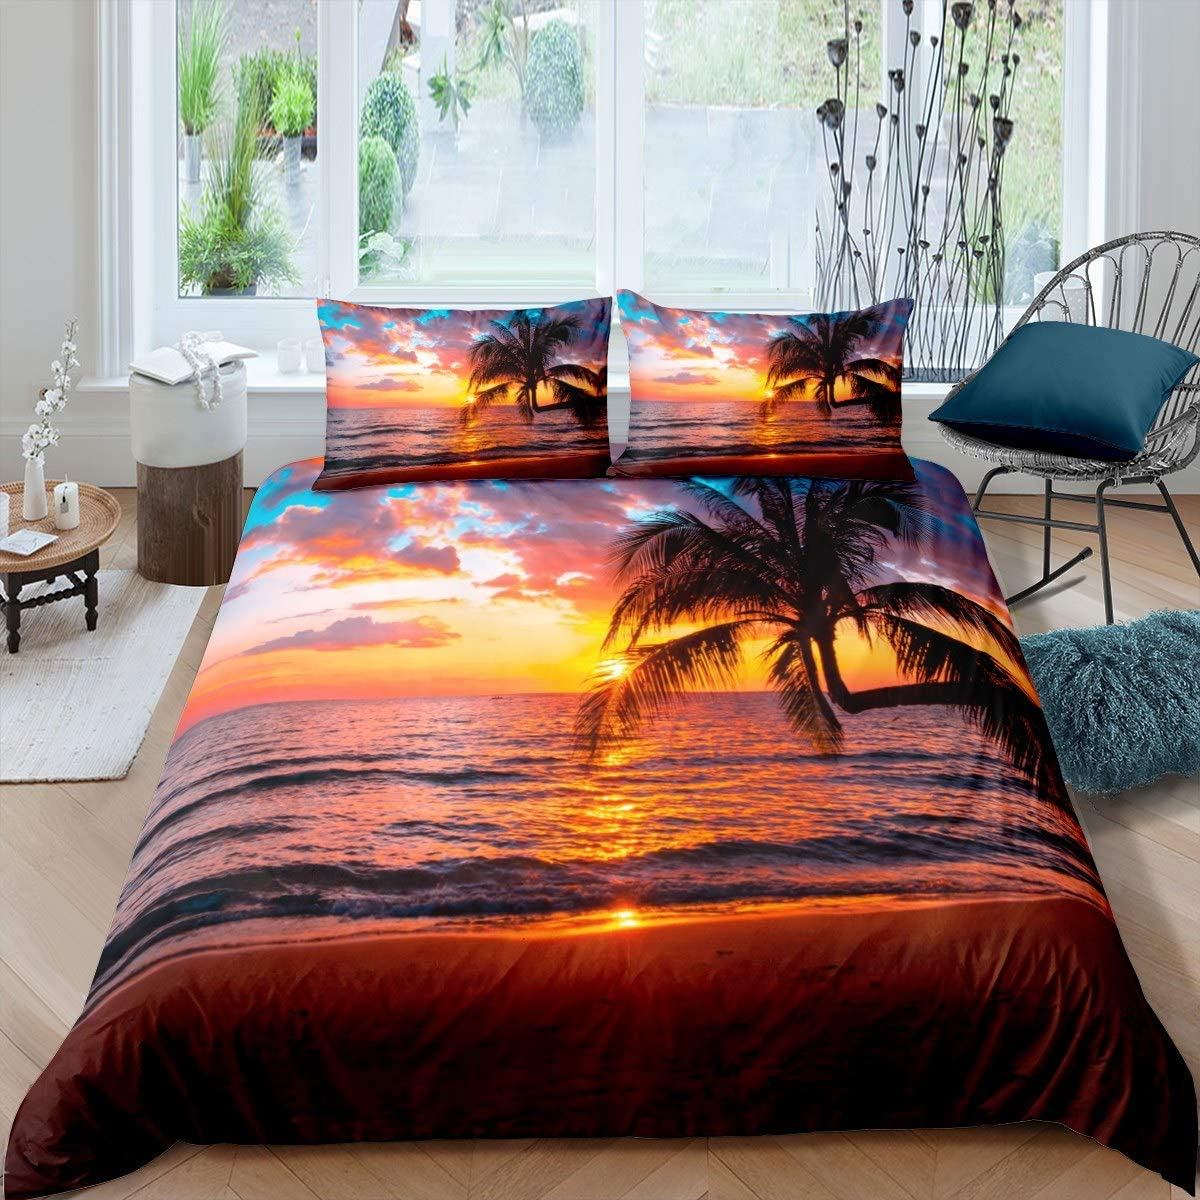 Feelyou Women Ocean Beach Duvet Cover for Kids Adults Girls Chic Sea Sunset Scenery Comforter Cover Tropical Palm Tree Bedding Set Hawaiian Holiday Bedspread Cover Room Decor Queen Size Bedclothes